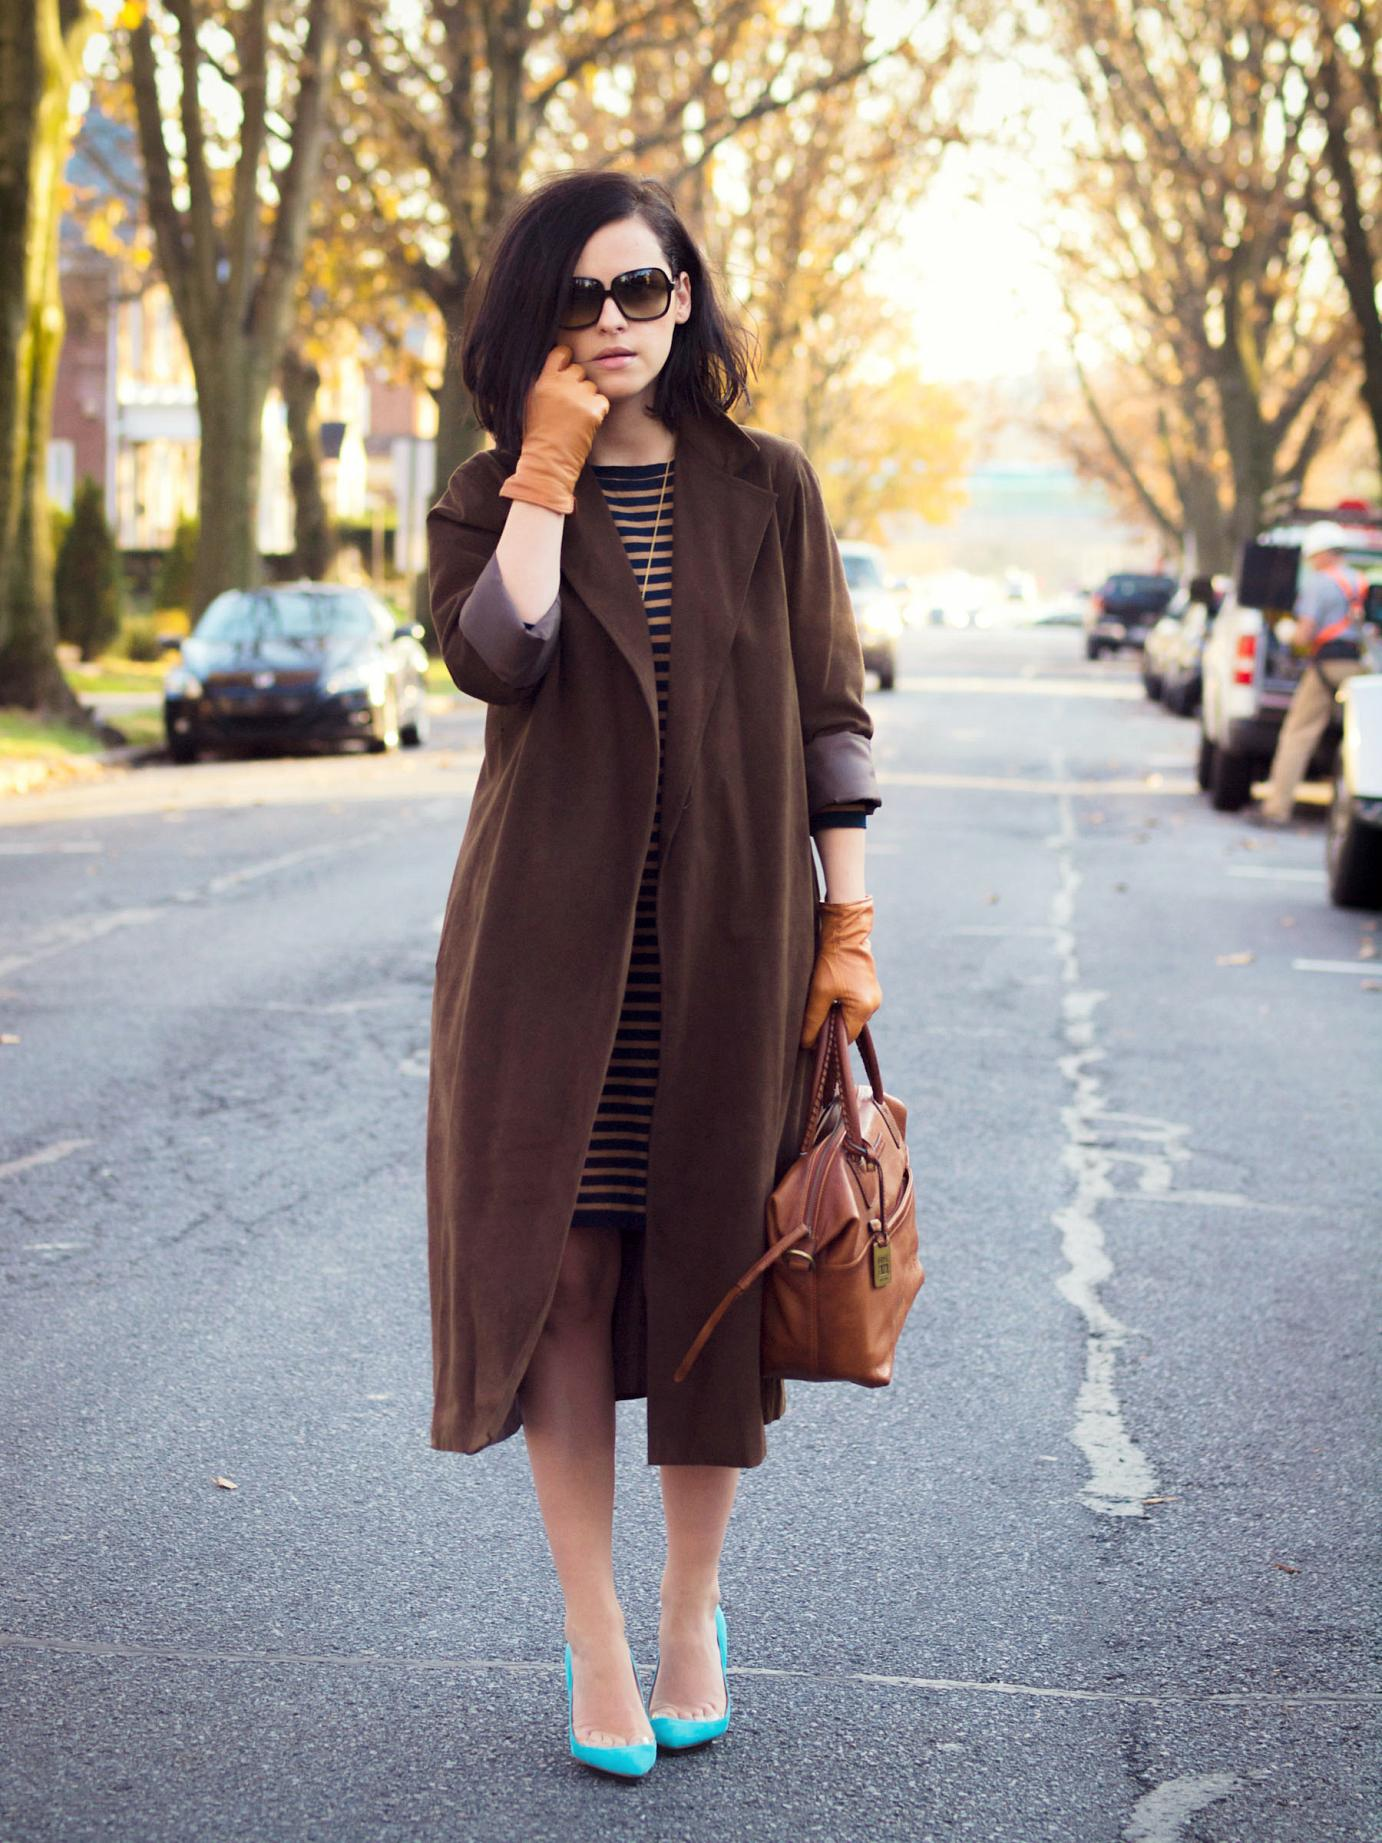 bittersweet colours, fall street style, suede coat, leather gloves, stripes, ysl, maternity style, 24 weeks, konstantina tzovolou shoes, blue heels, street style,